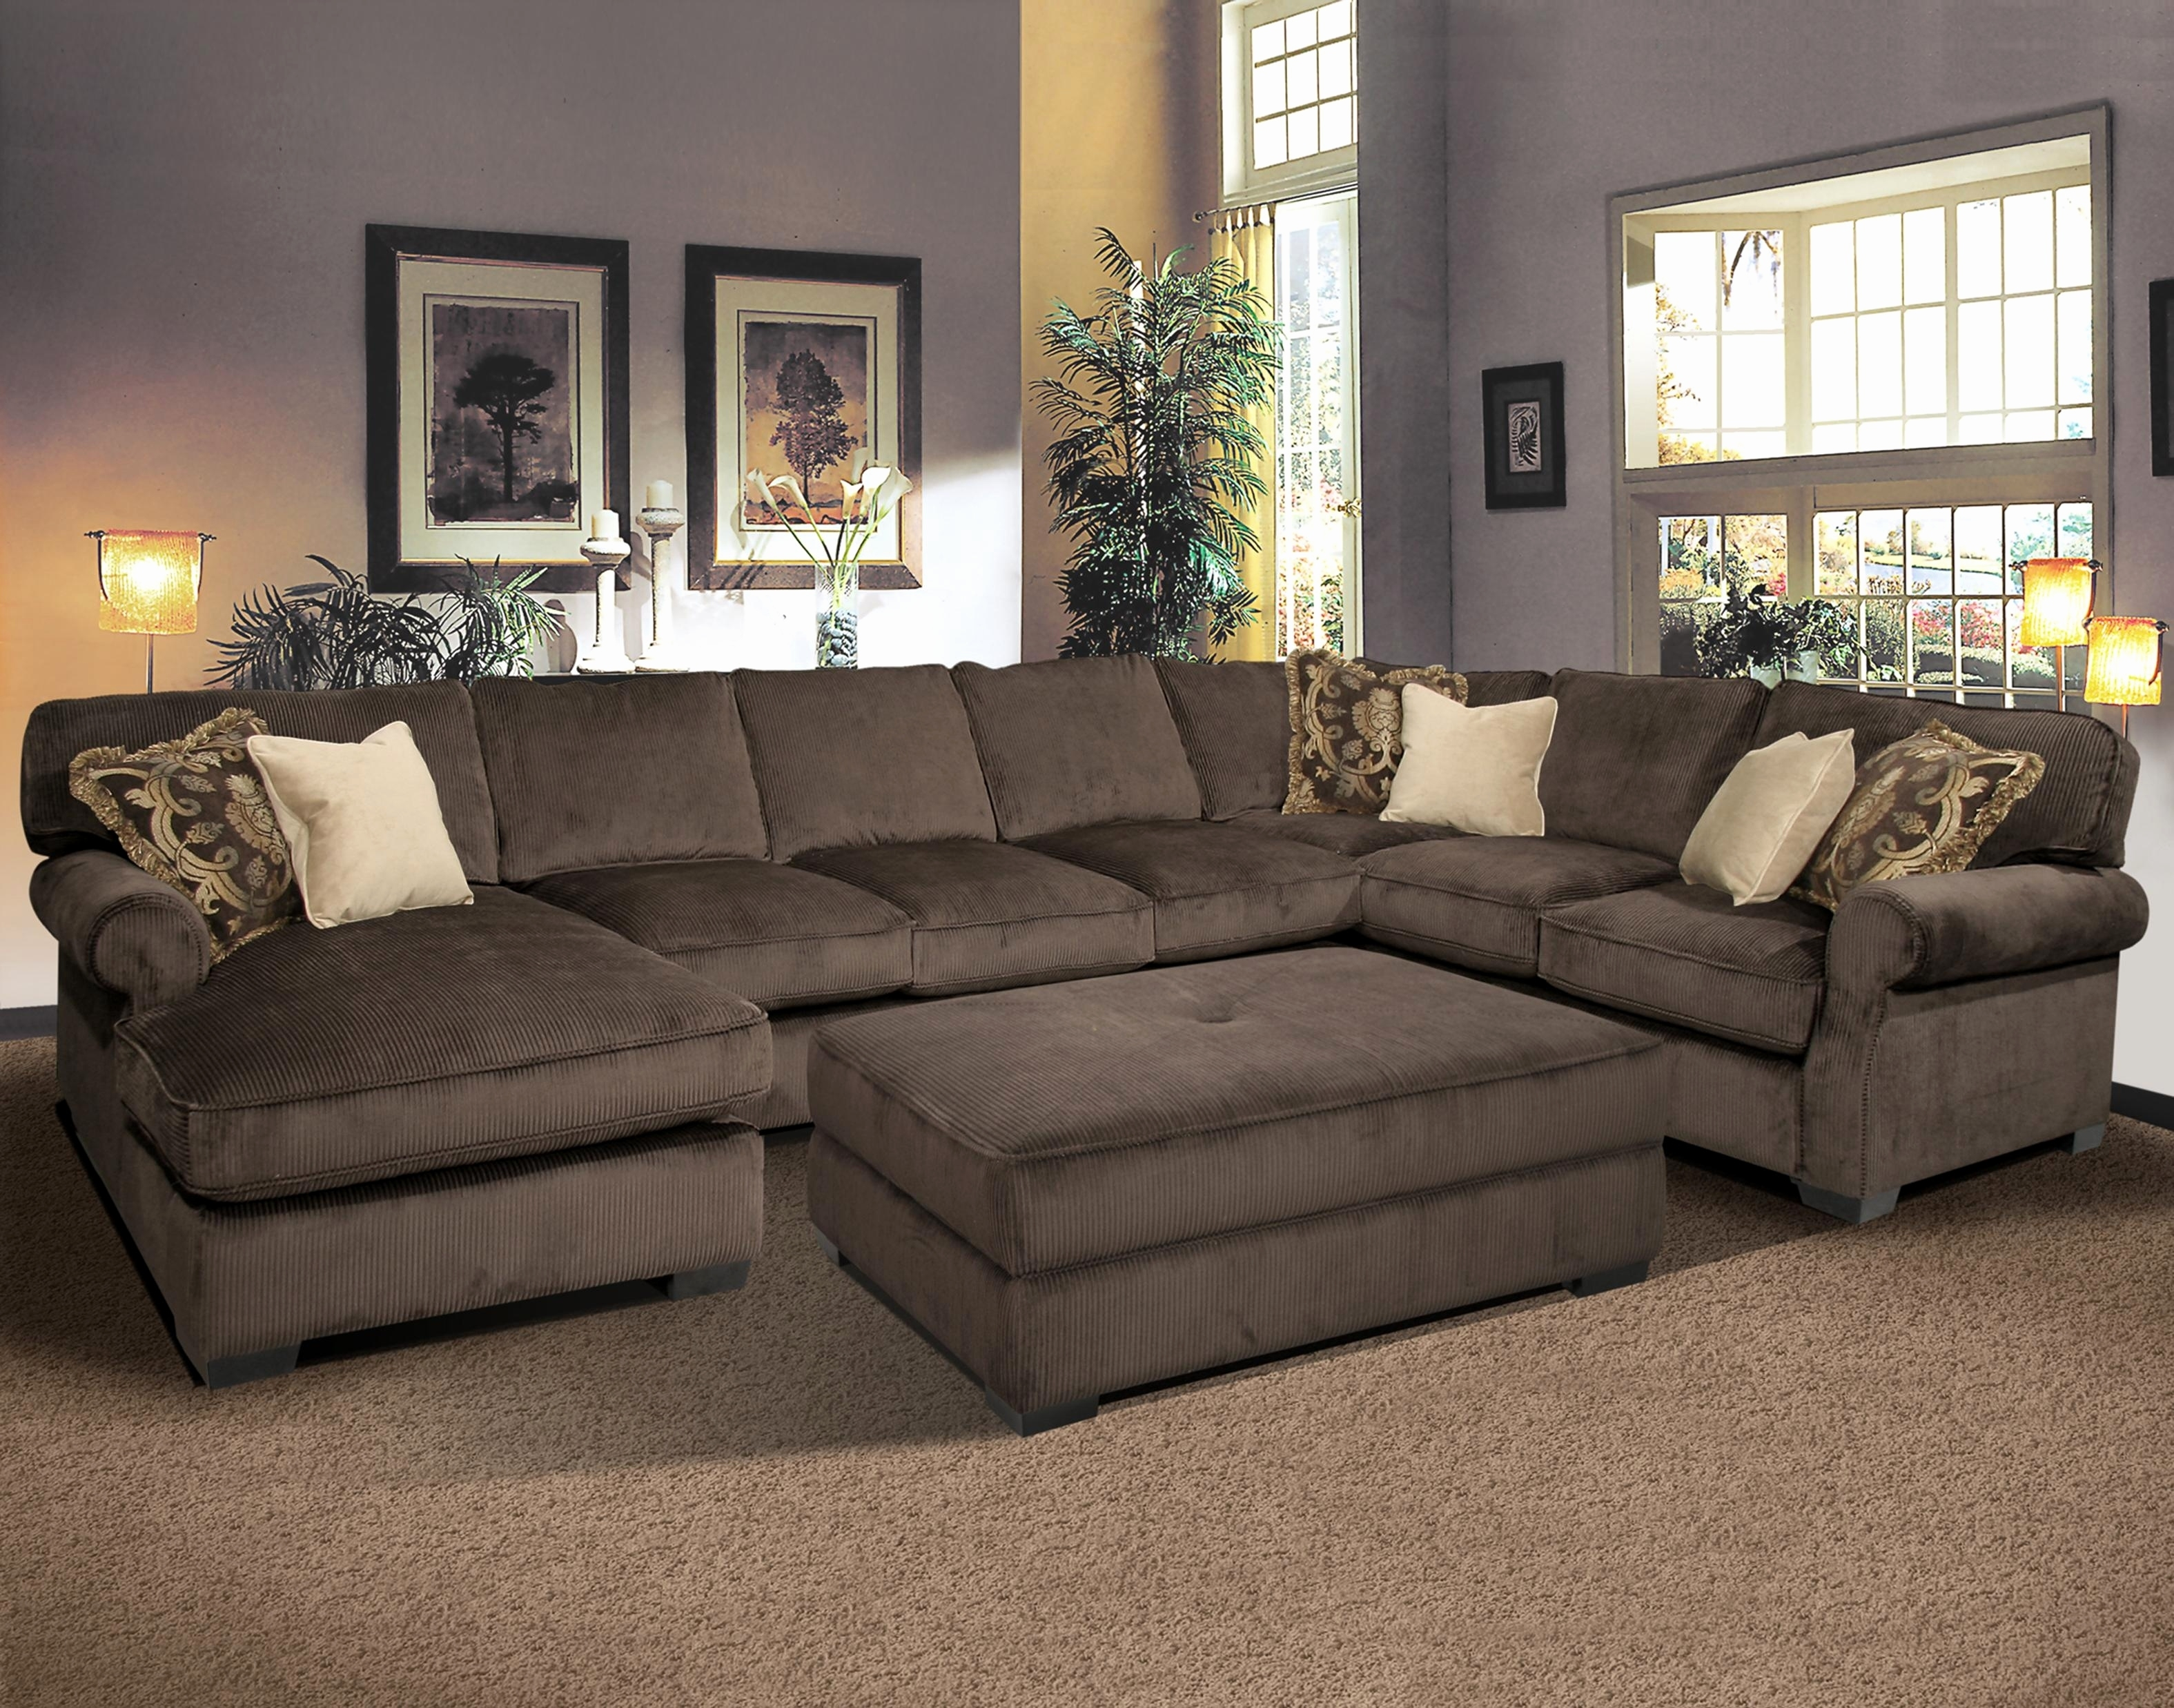 Modular Sectional Sofas Canada | Blackfridays (Image 7 of 10)